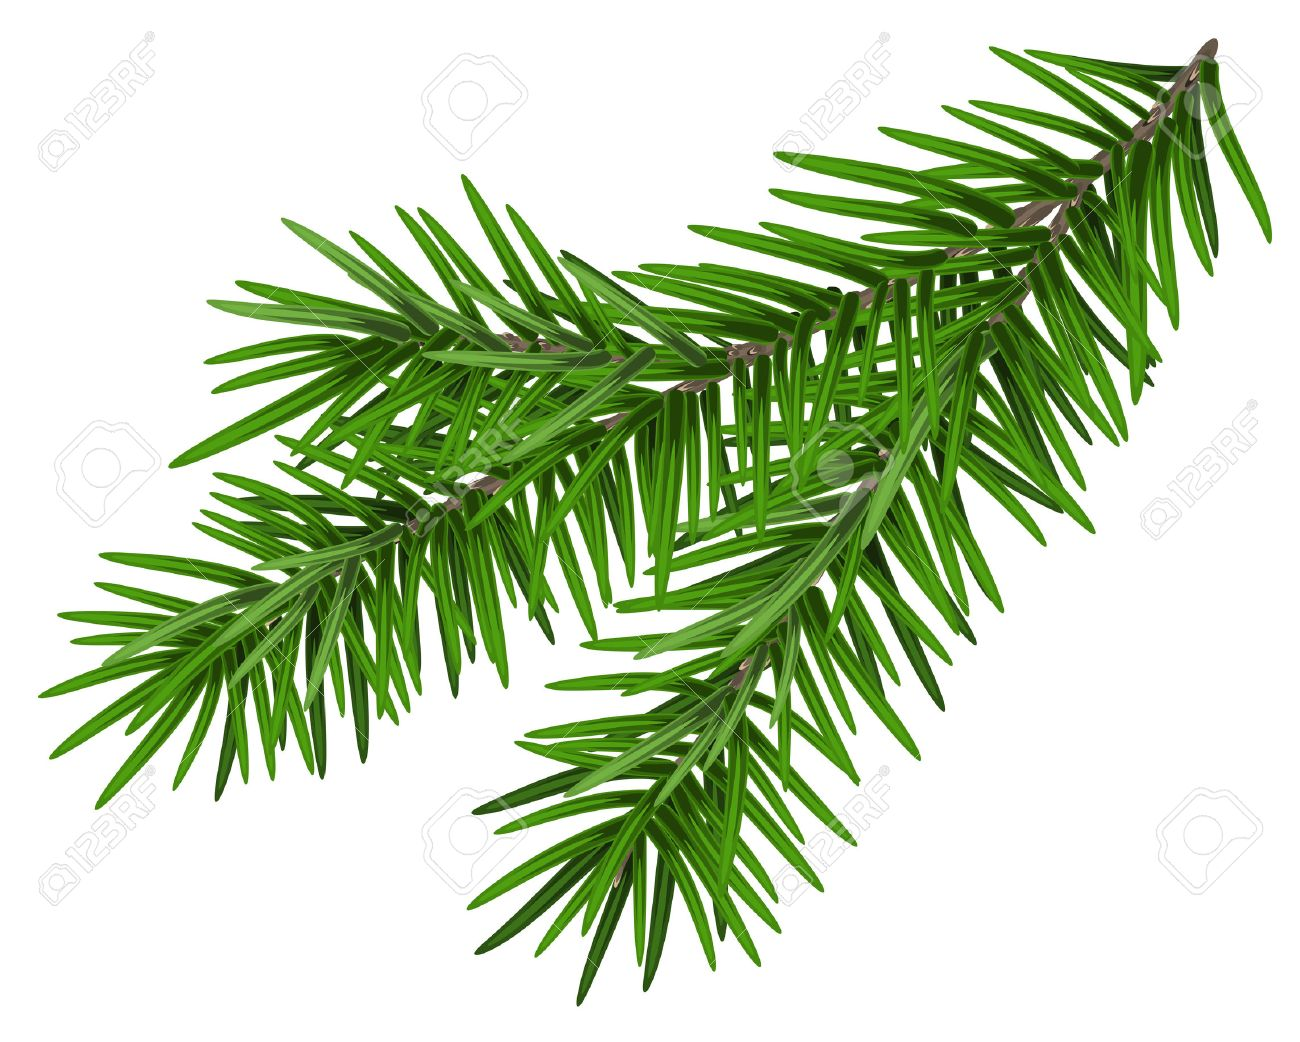 Green lush spruce branch. Fir branch. Isolated on white vector illustration - 49501502